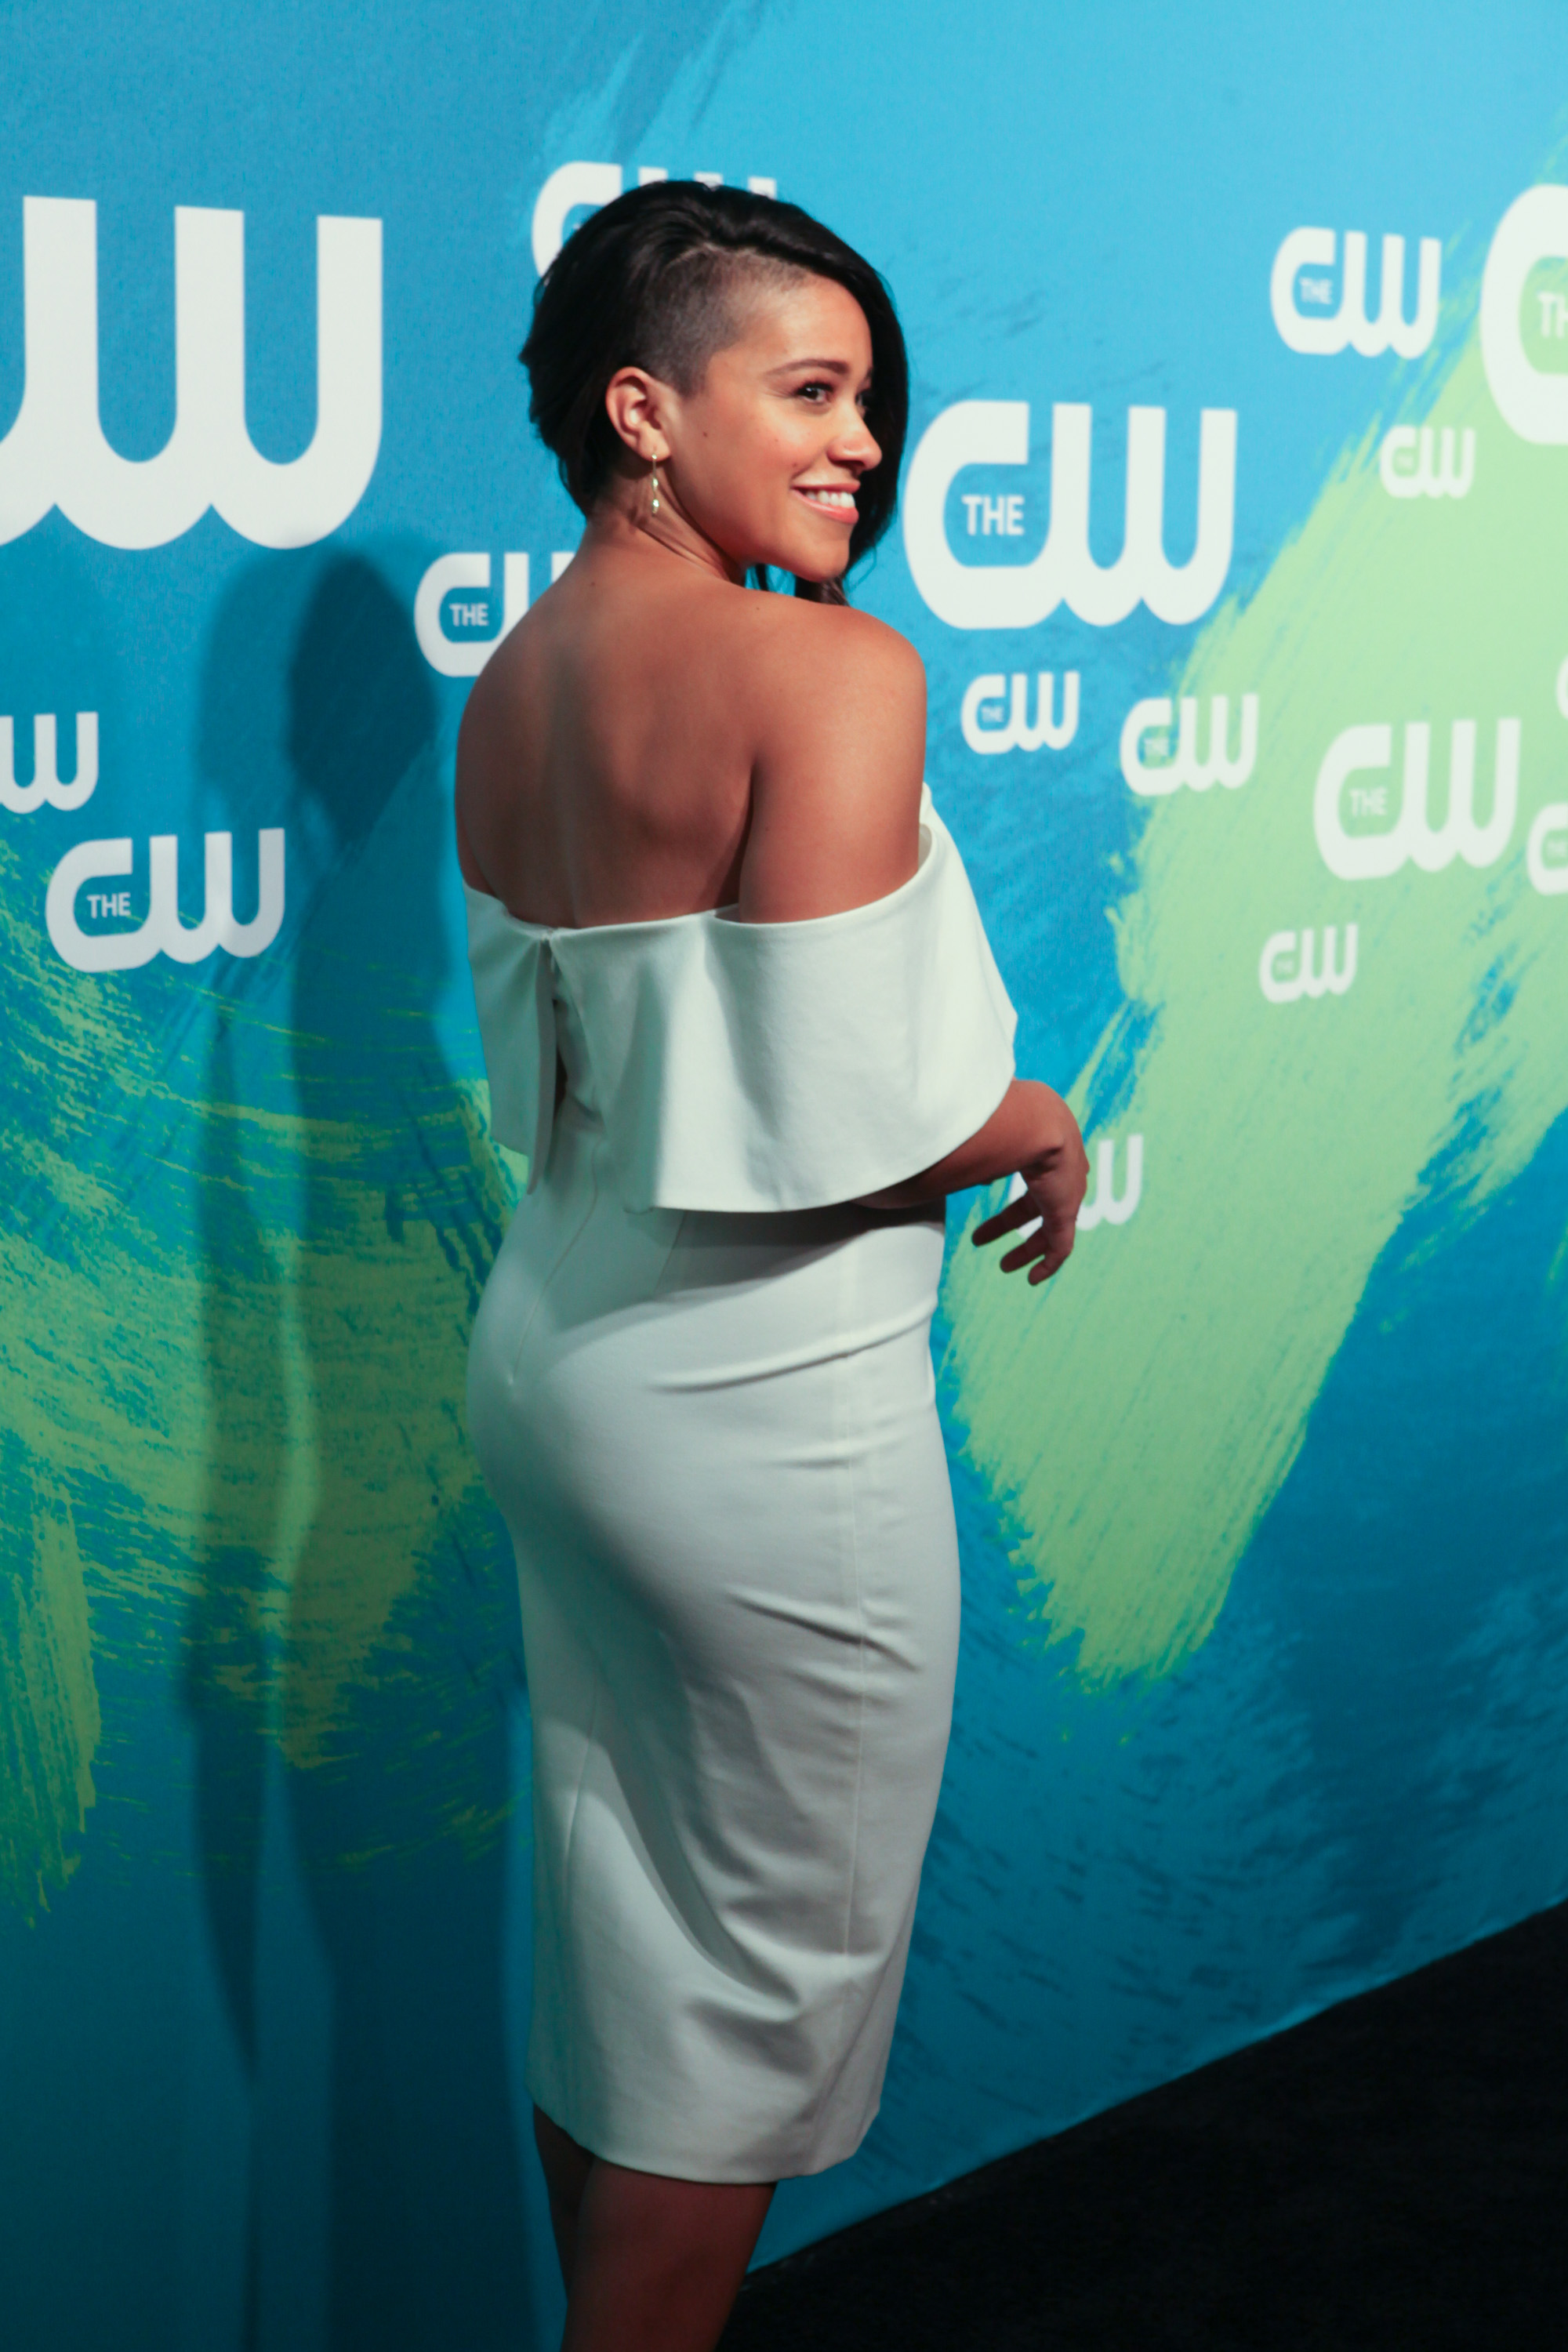 The CW Network's 2016 New York Upfront